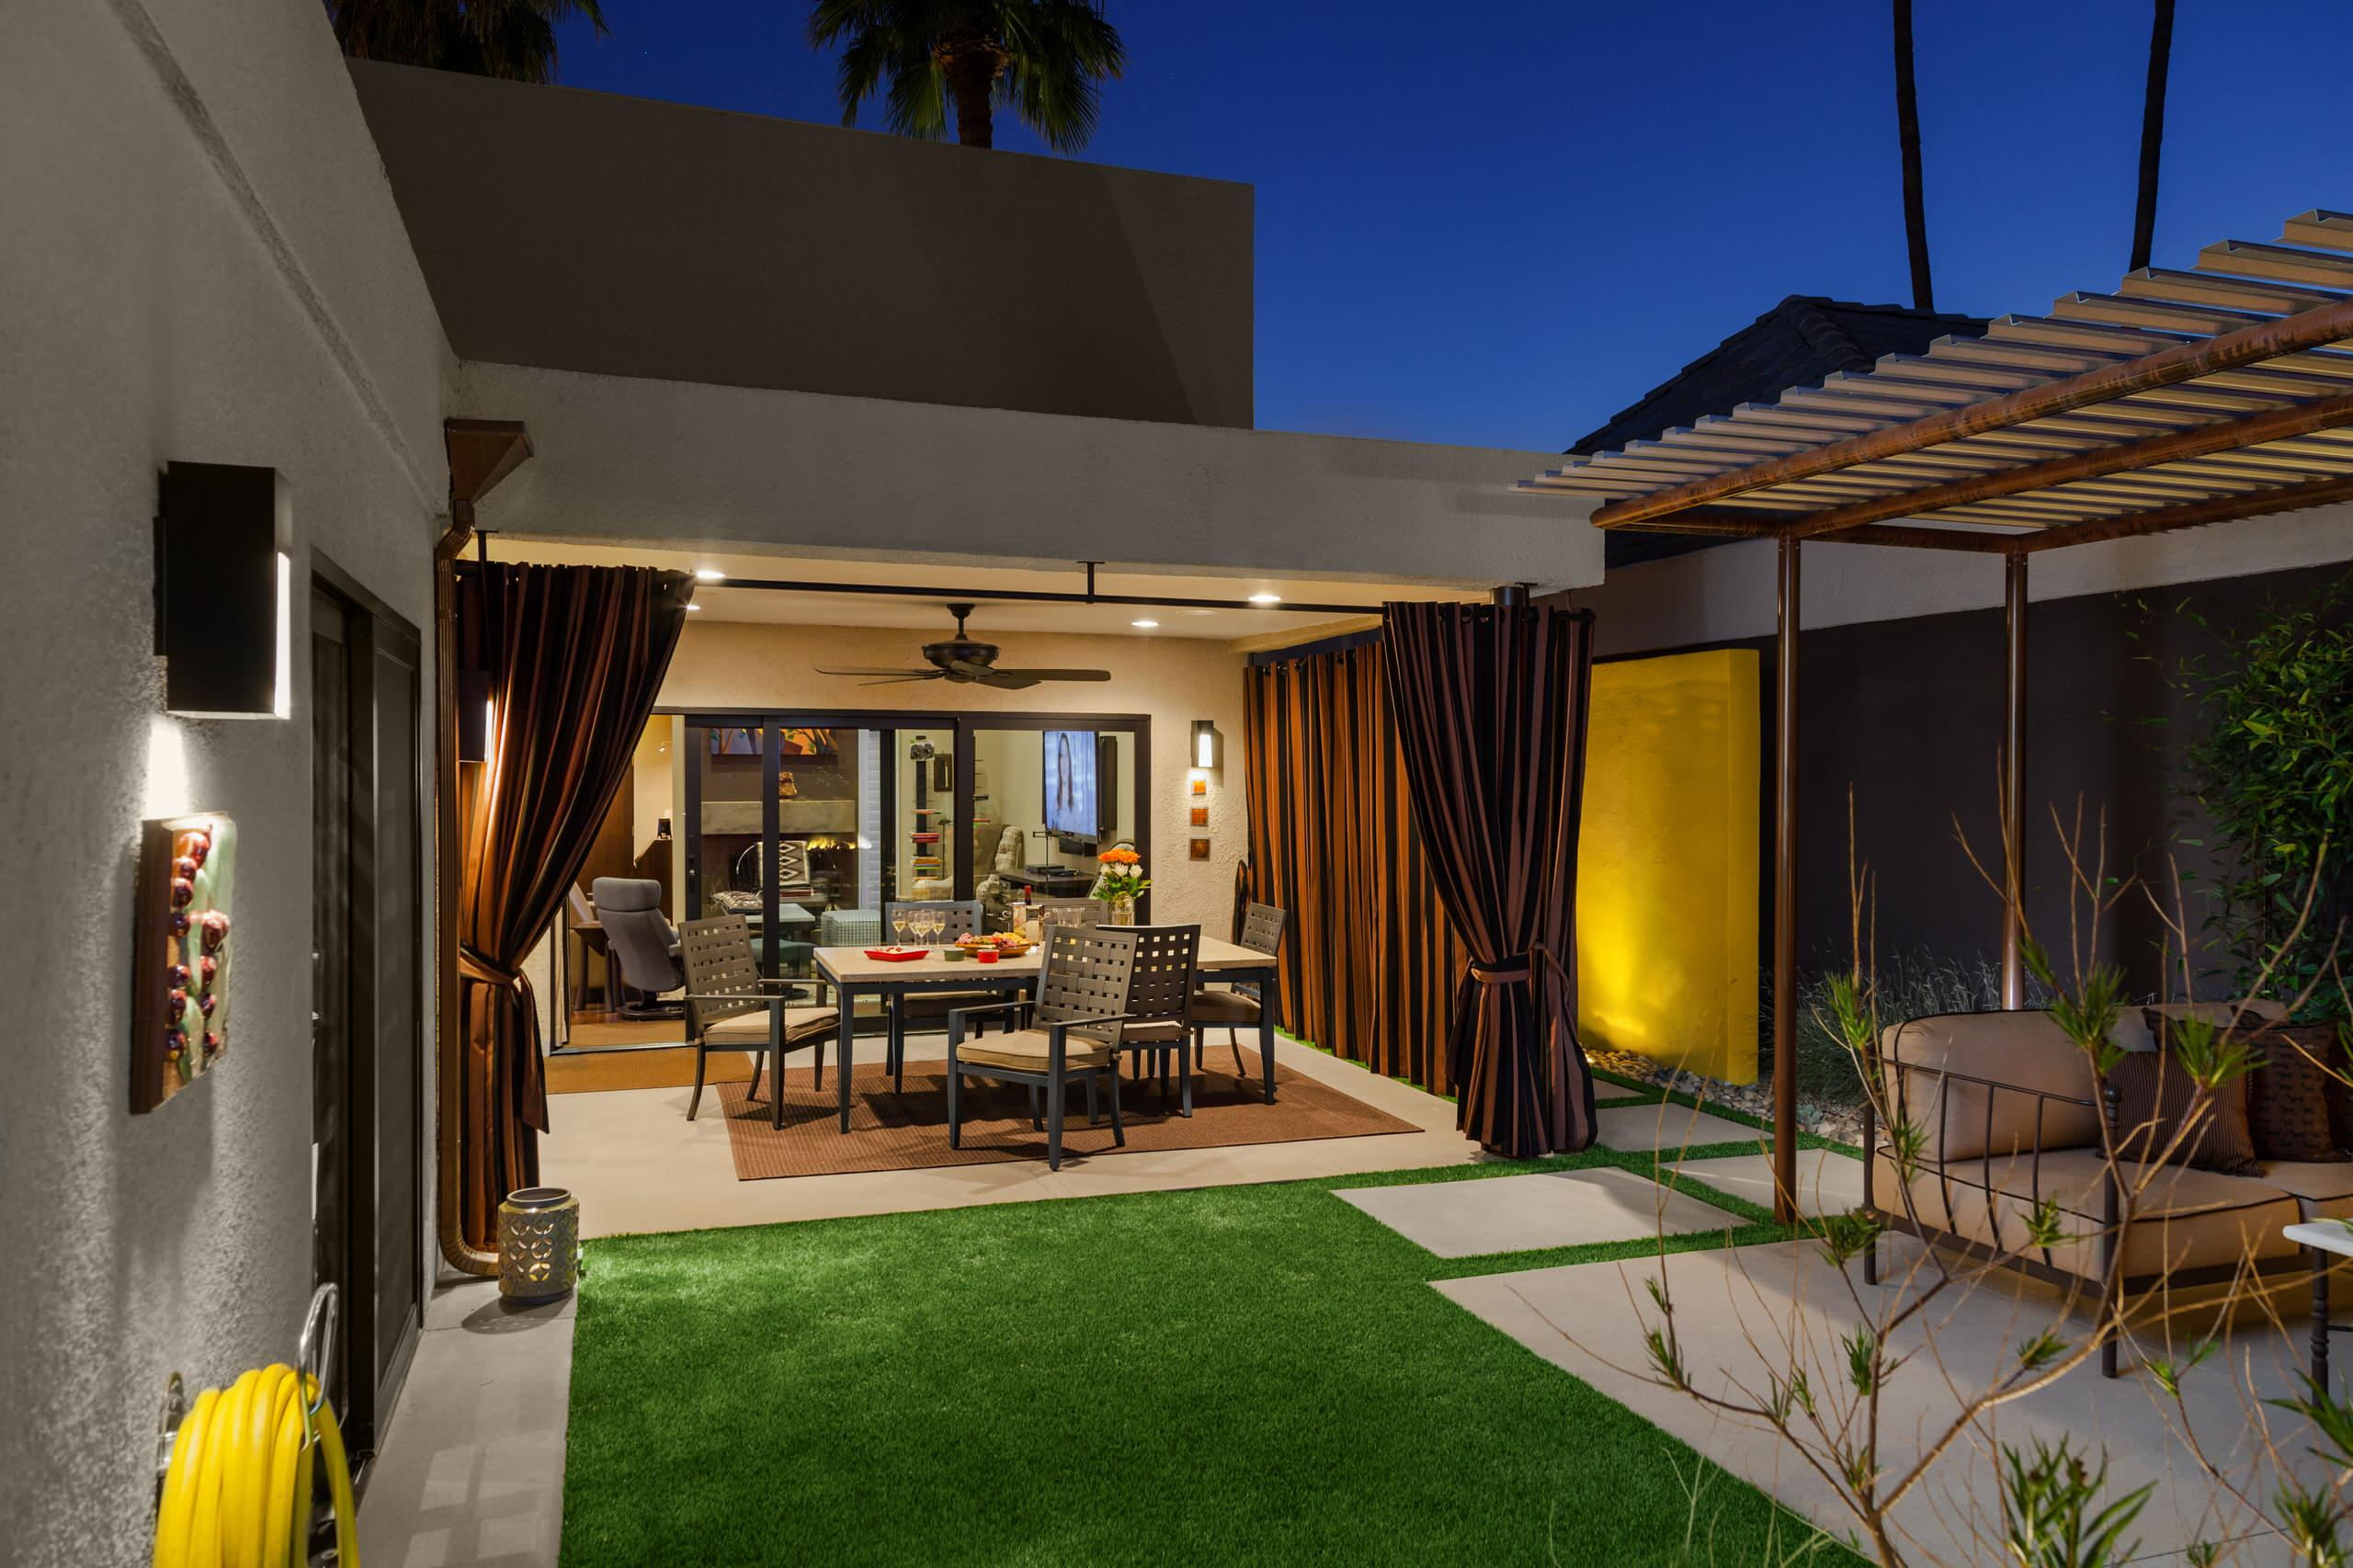 18 Spectacular Modern Patio Designs To Enjoy The Outdoors on Patio Top Ideas id=72871